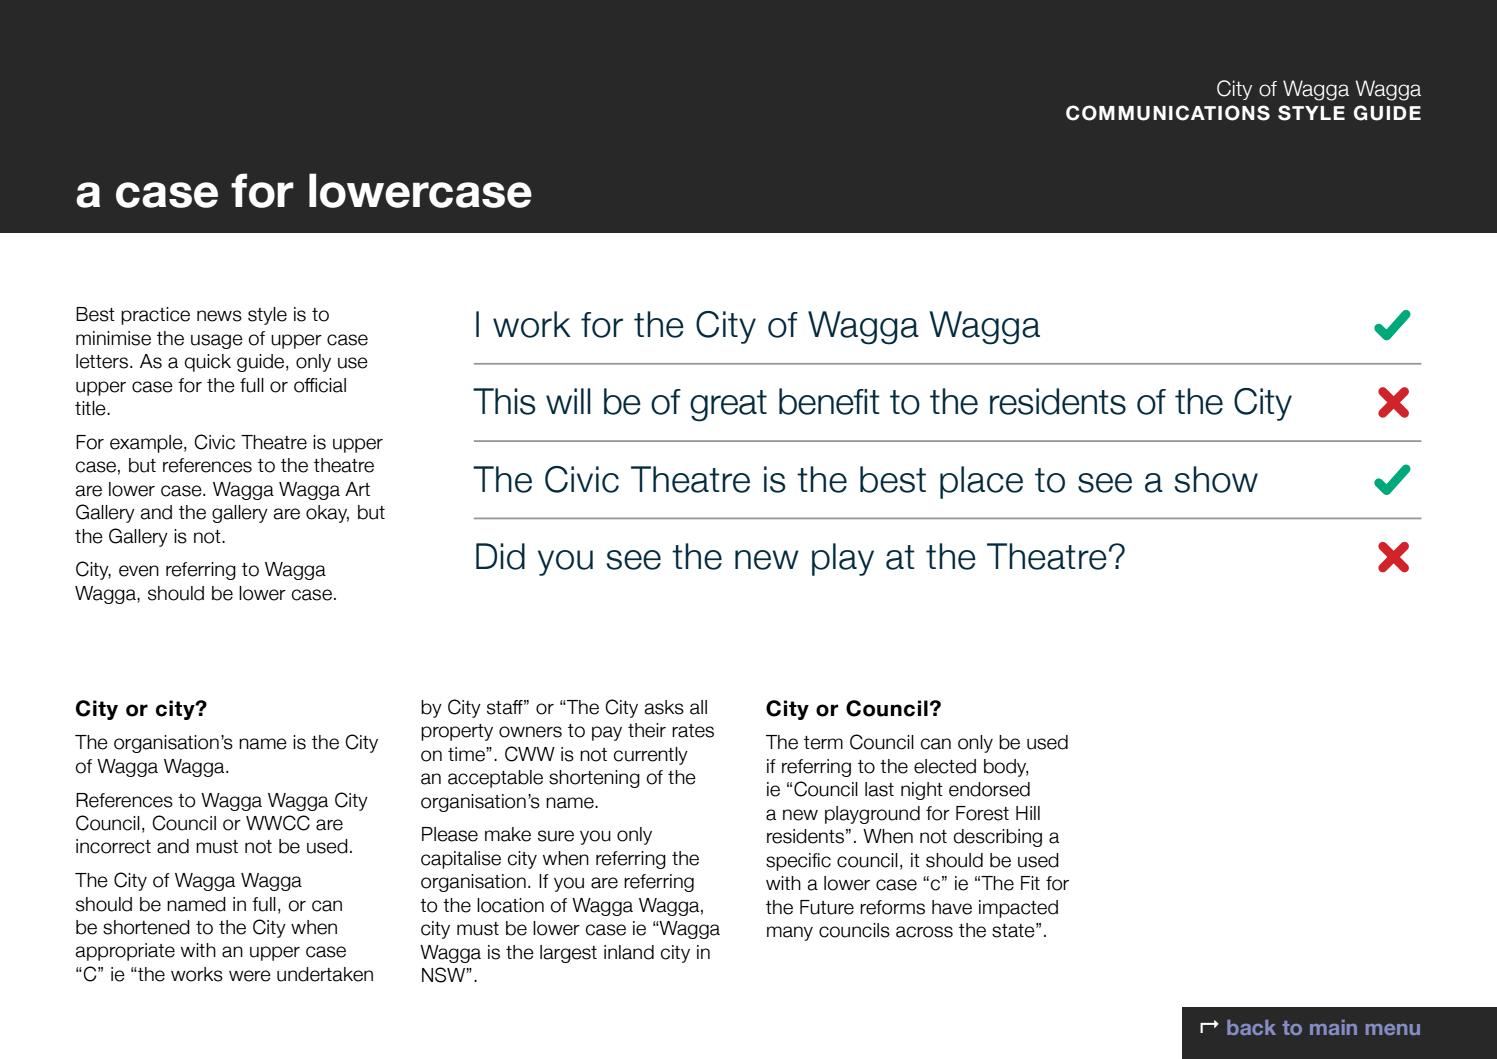 Communications Style Guide City Of Wagga Wagga By Wagga Wagga City Council Issuu